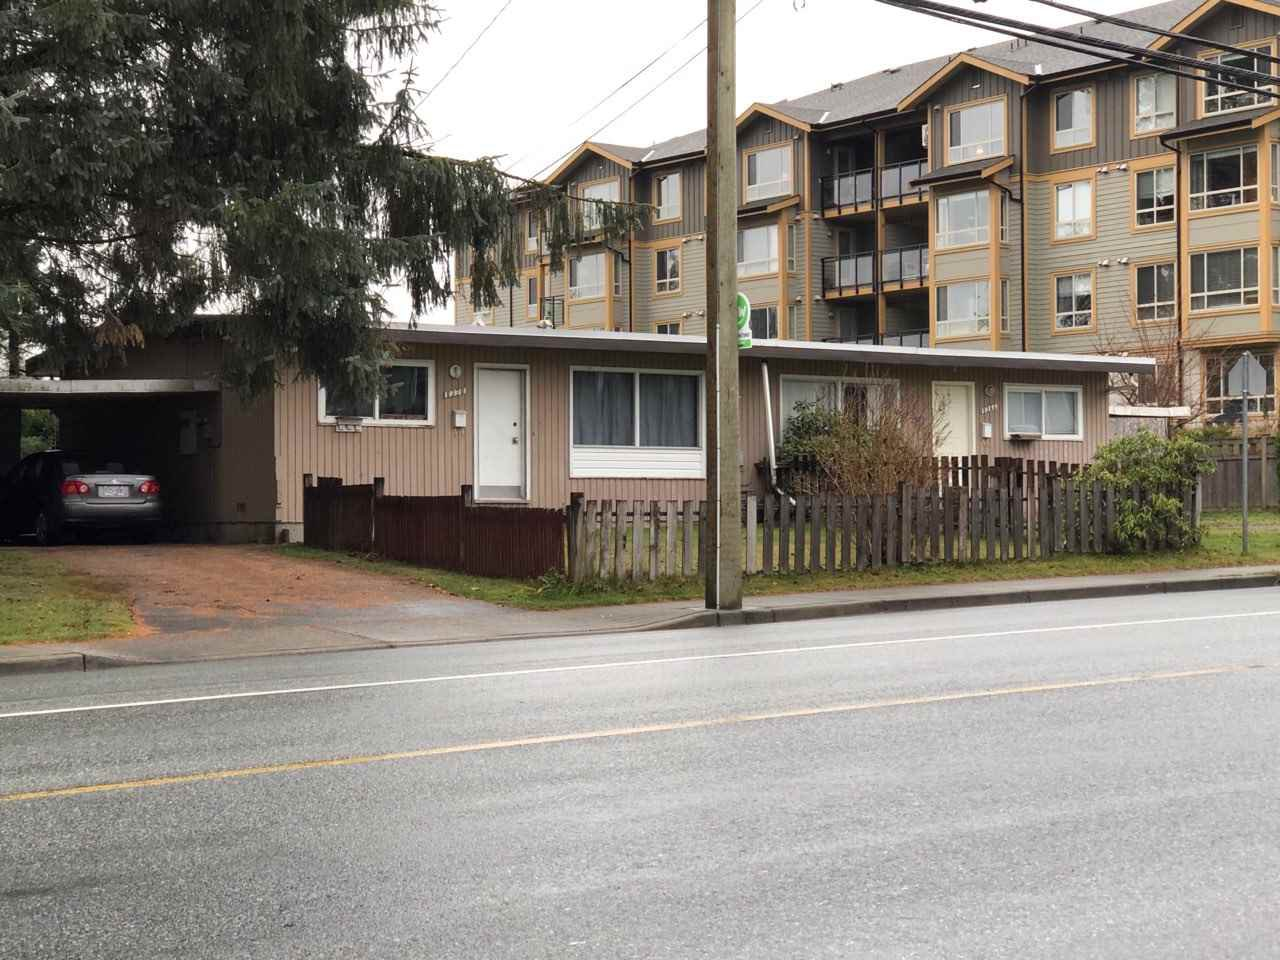 Main Photo: 8366 - 8370 CEDAR Street in Mission: Mission BC House Duplex for sale : MLS®# R2420987